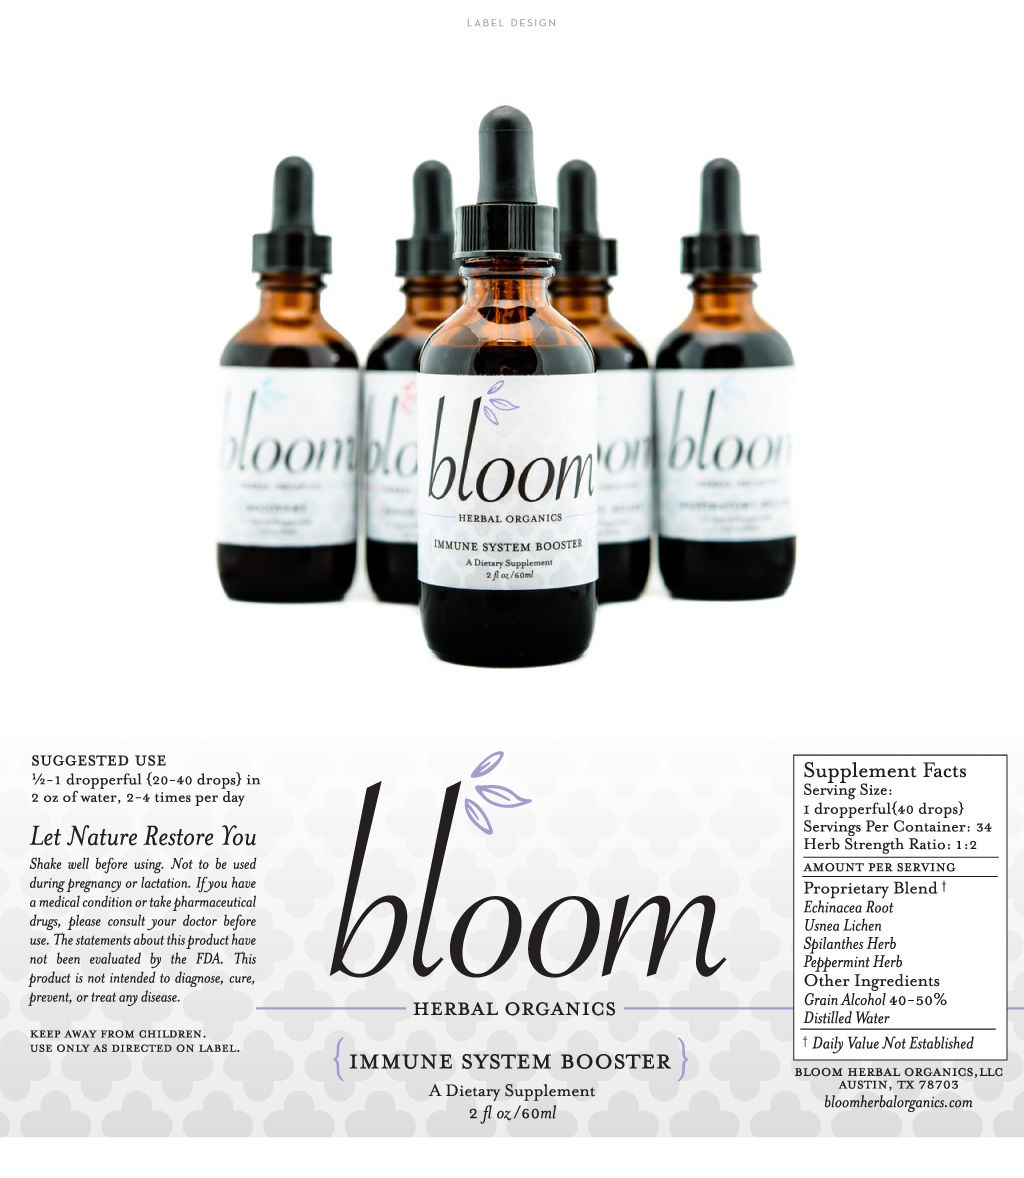 Bloom Herbal Organics label design by M studio